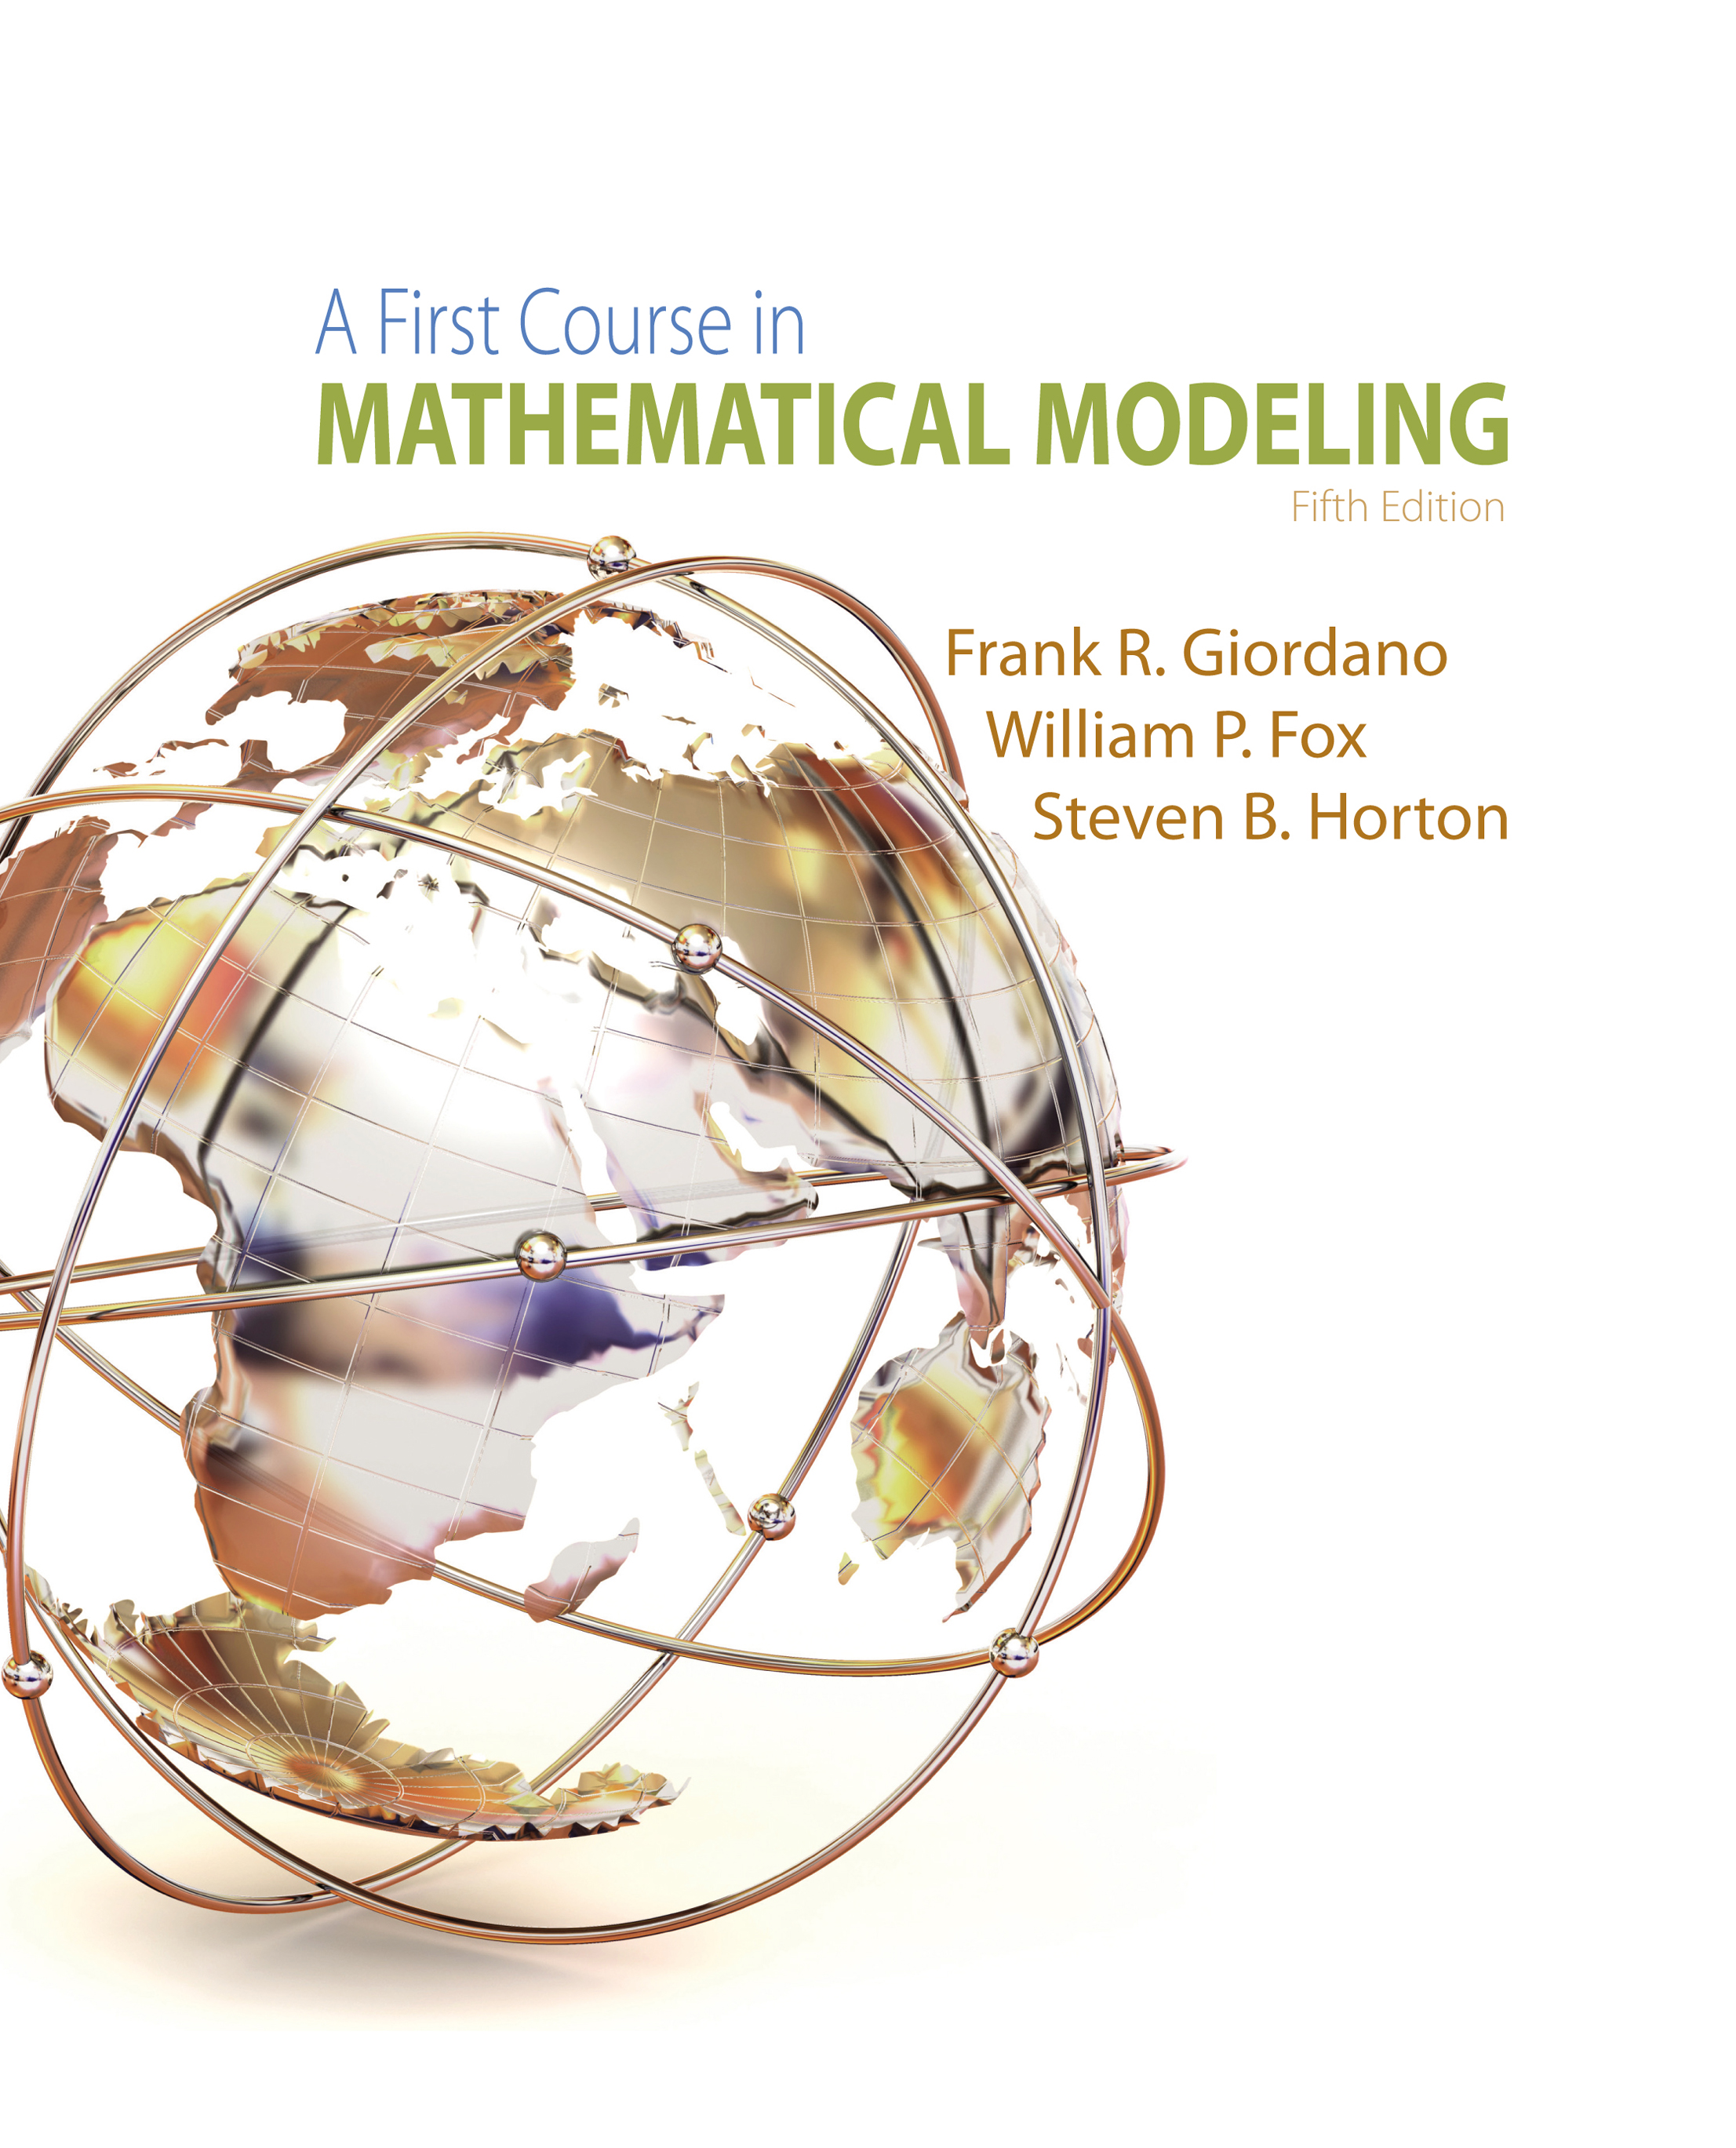 A First Course In Math Modeling HiMCM/MCM/ICM美国数学建模